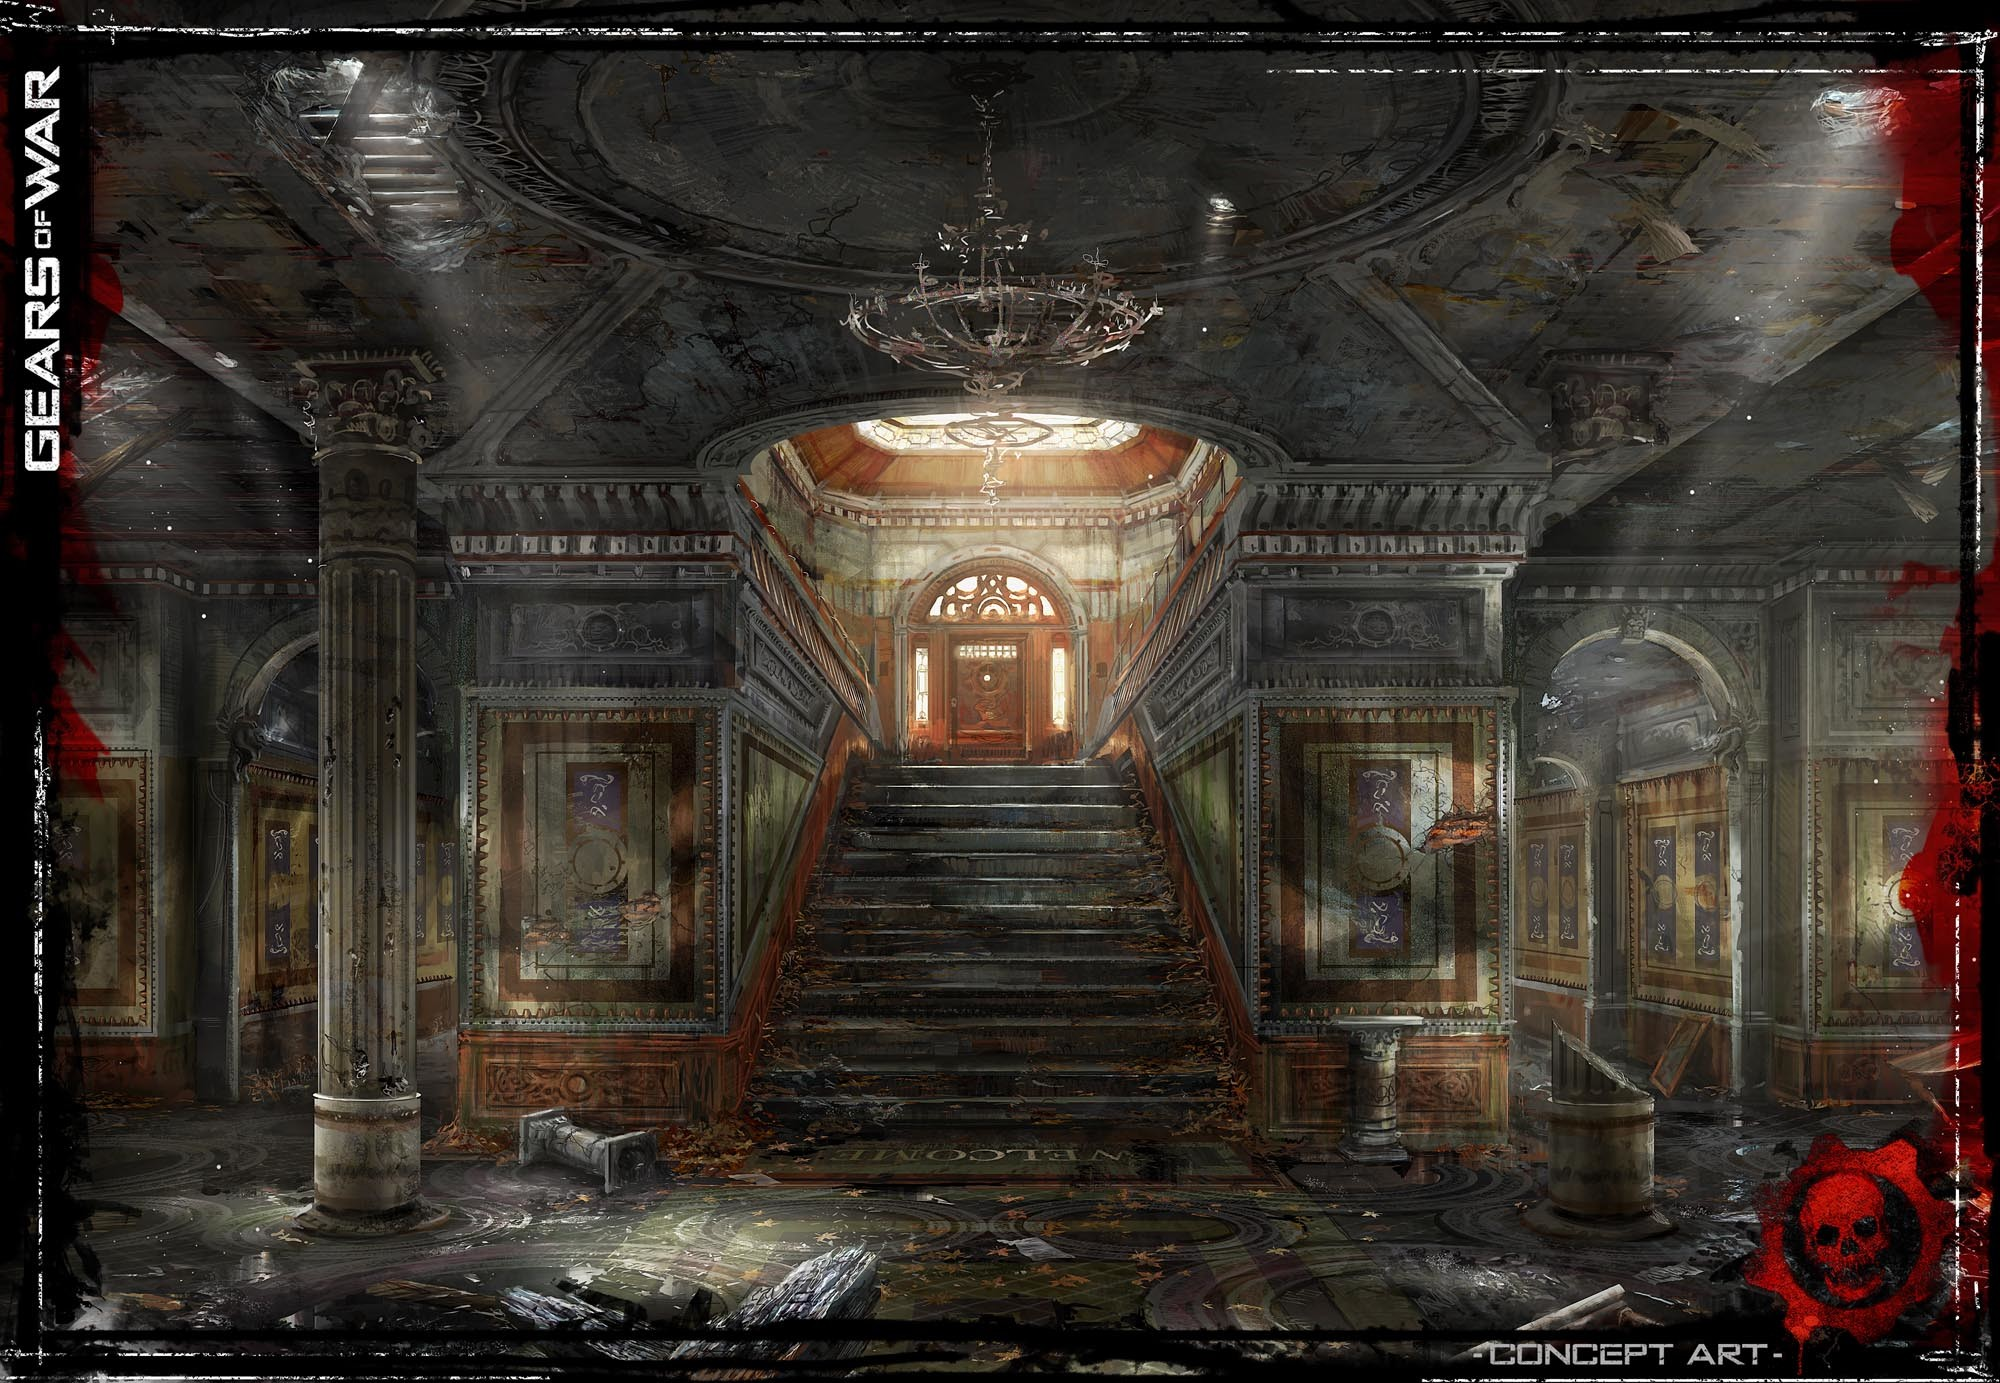 https://simoncpage.co.uk/blog/wp-content/uploads/2008/09/gearsofwarconcept2.jpg    CG Environment, Buildings and Props   Pinterest   Concept art, Game  concept …